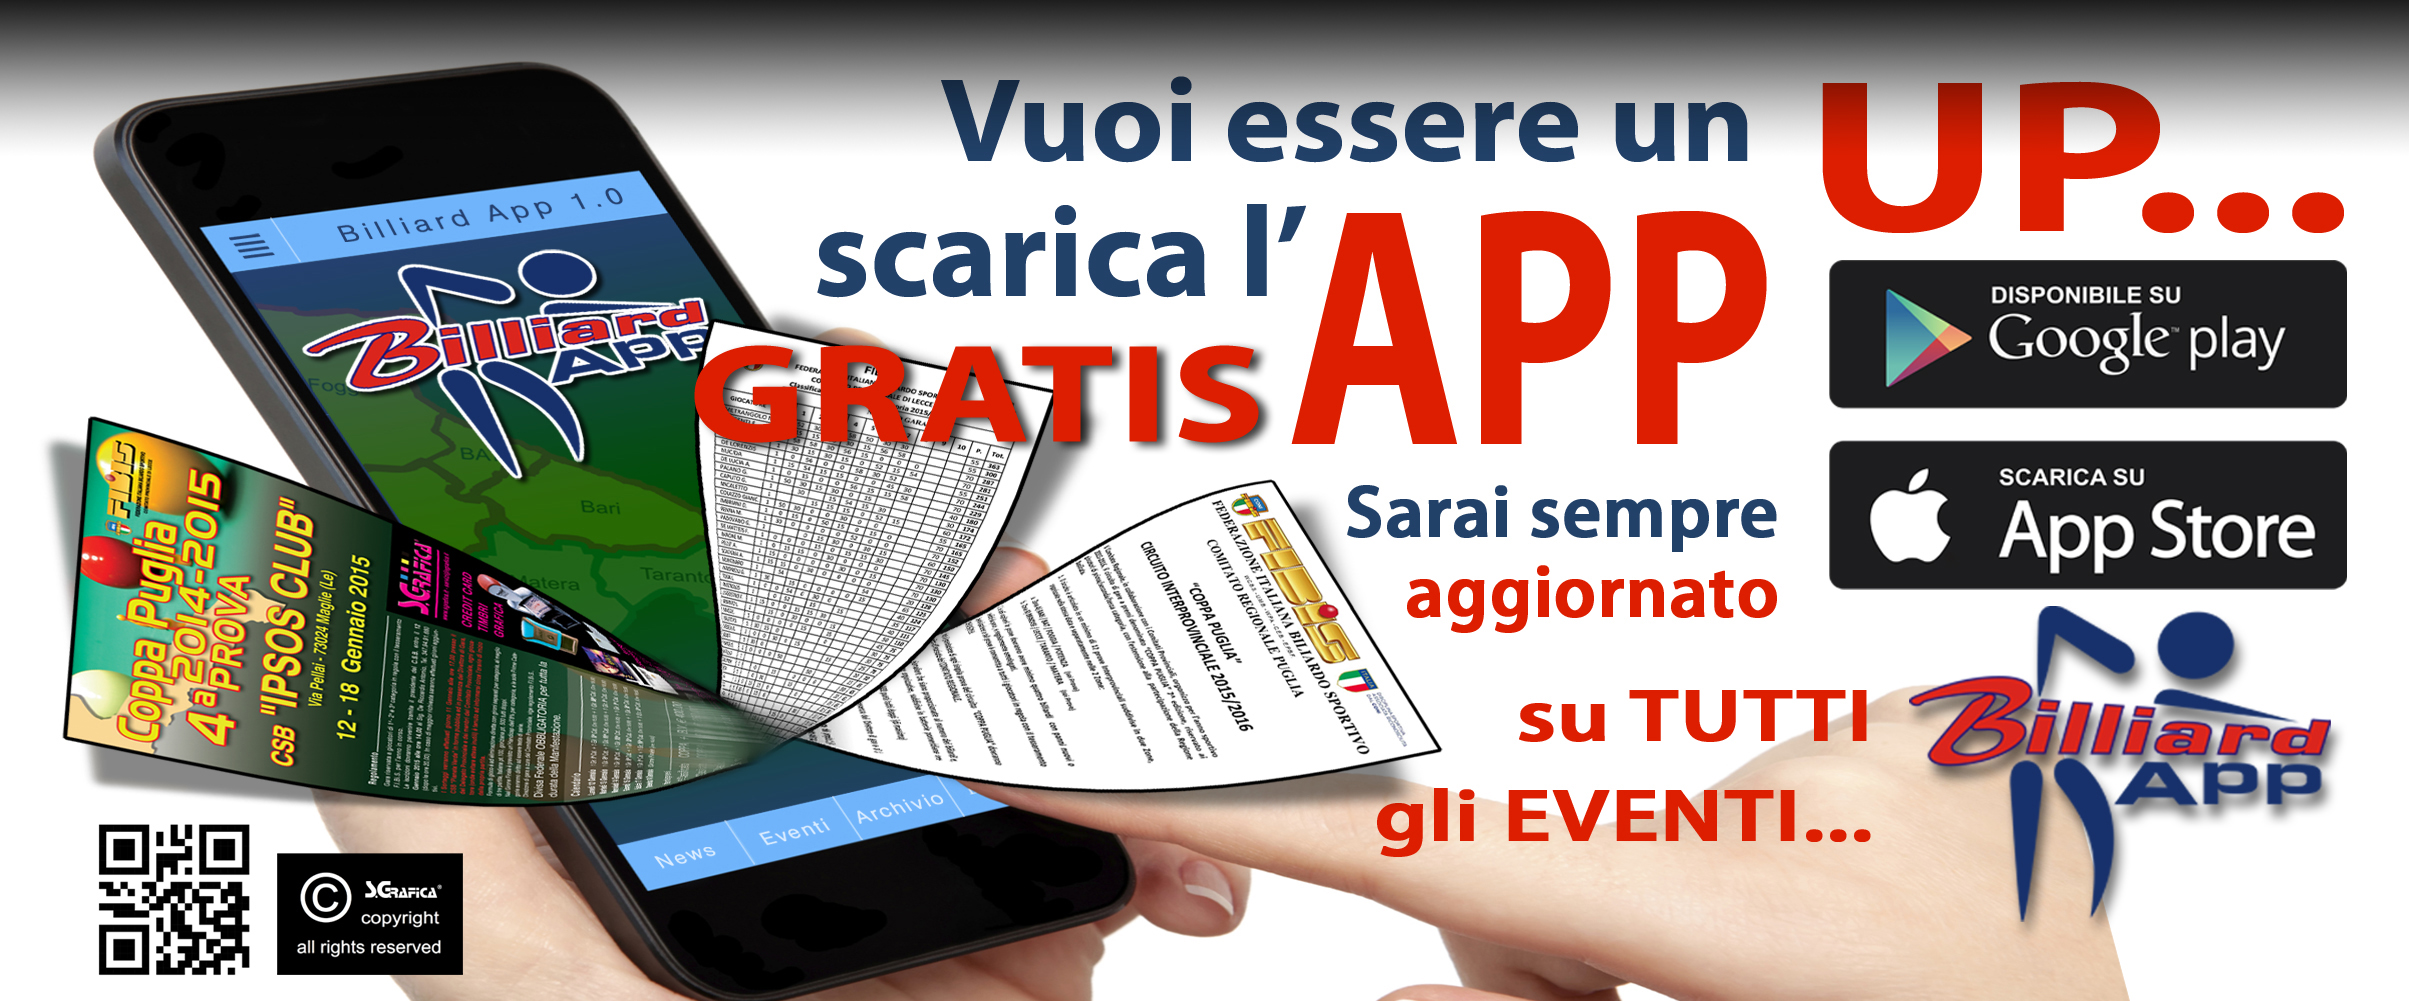 BilliardApp PER FACE